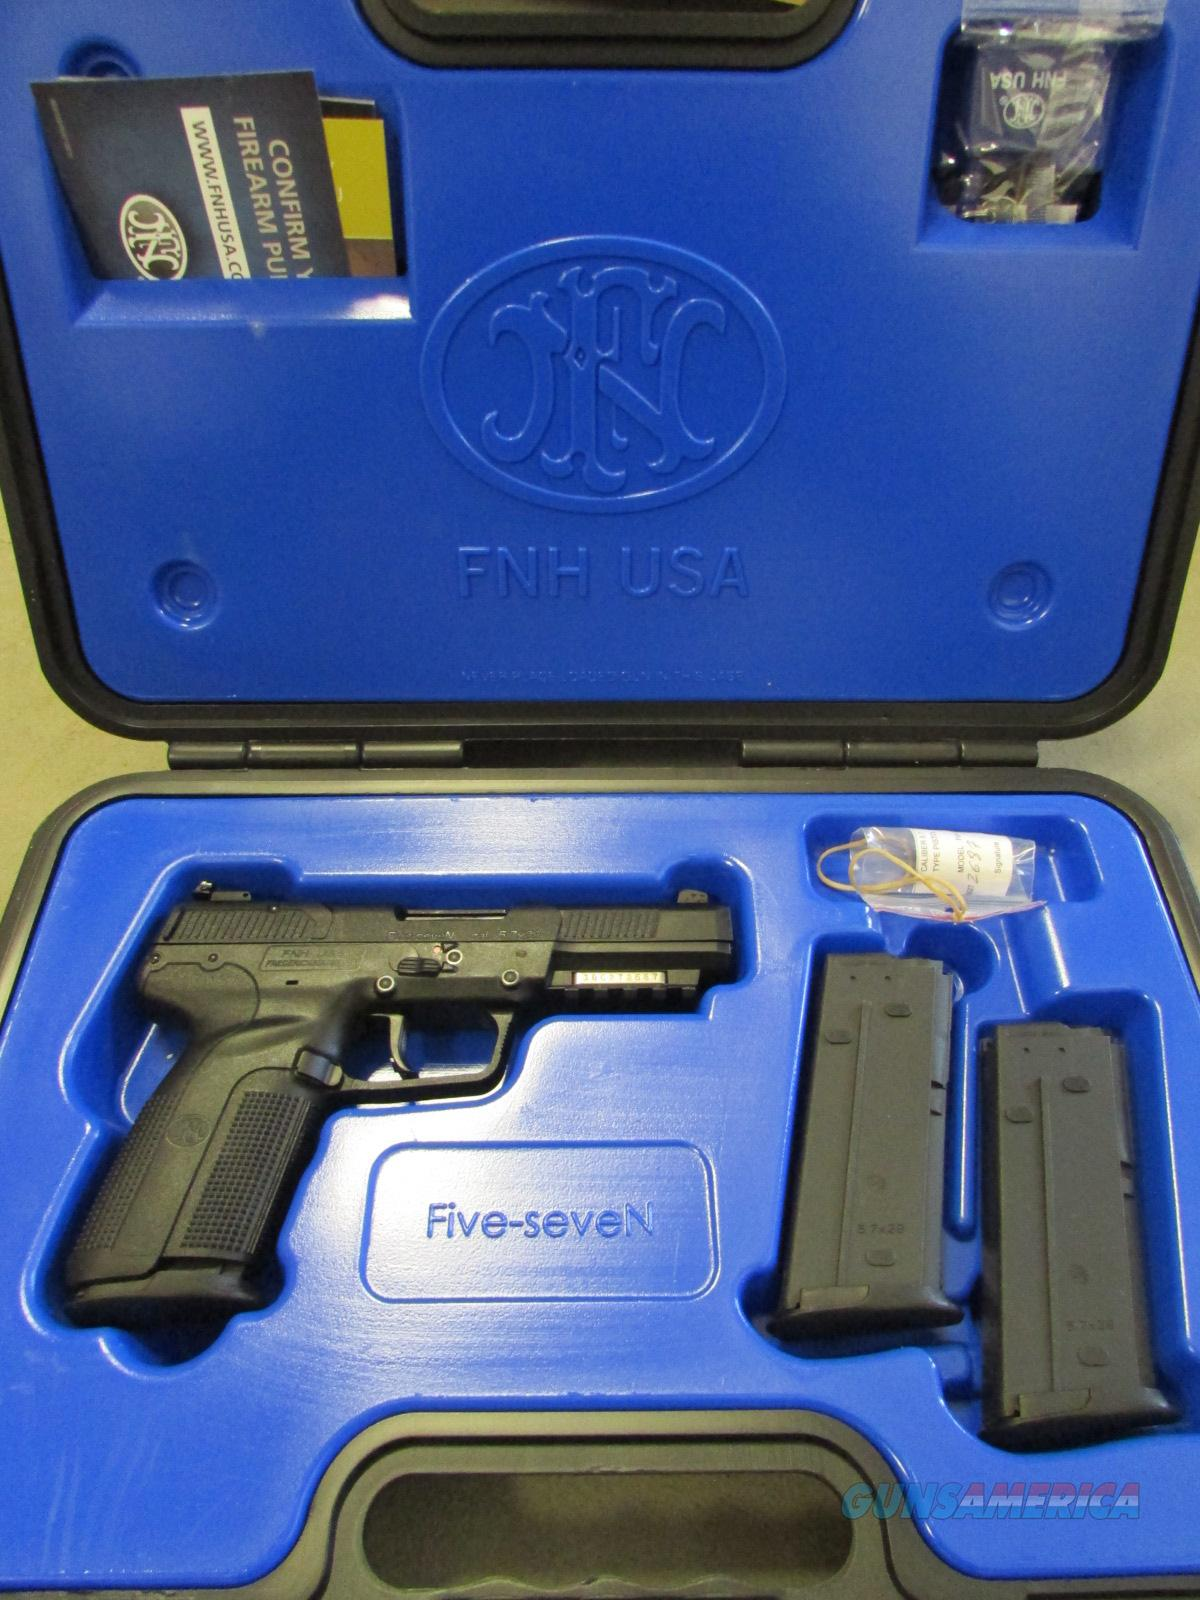 FNH-USA Five-SeveN MKII 5.7X28mm BLACK FN 5.7  Guns > Pistols > FNH - Fabrique Nationale (FN) Pistols > FiveSeven